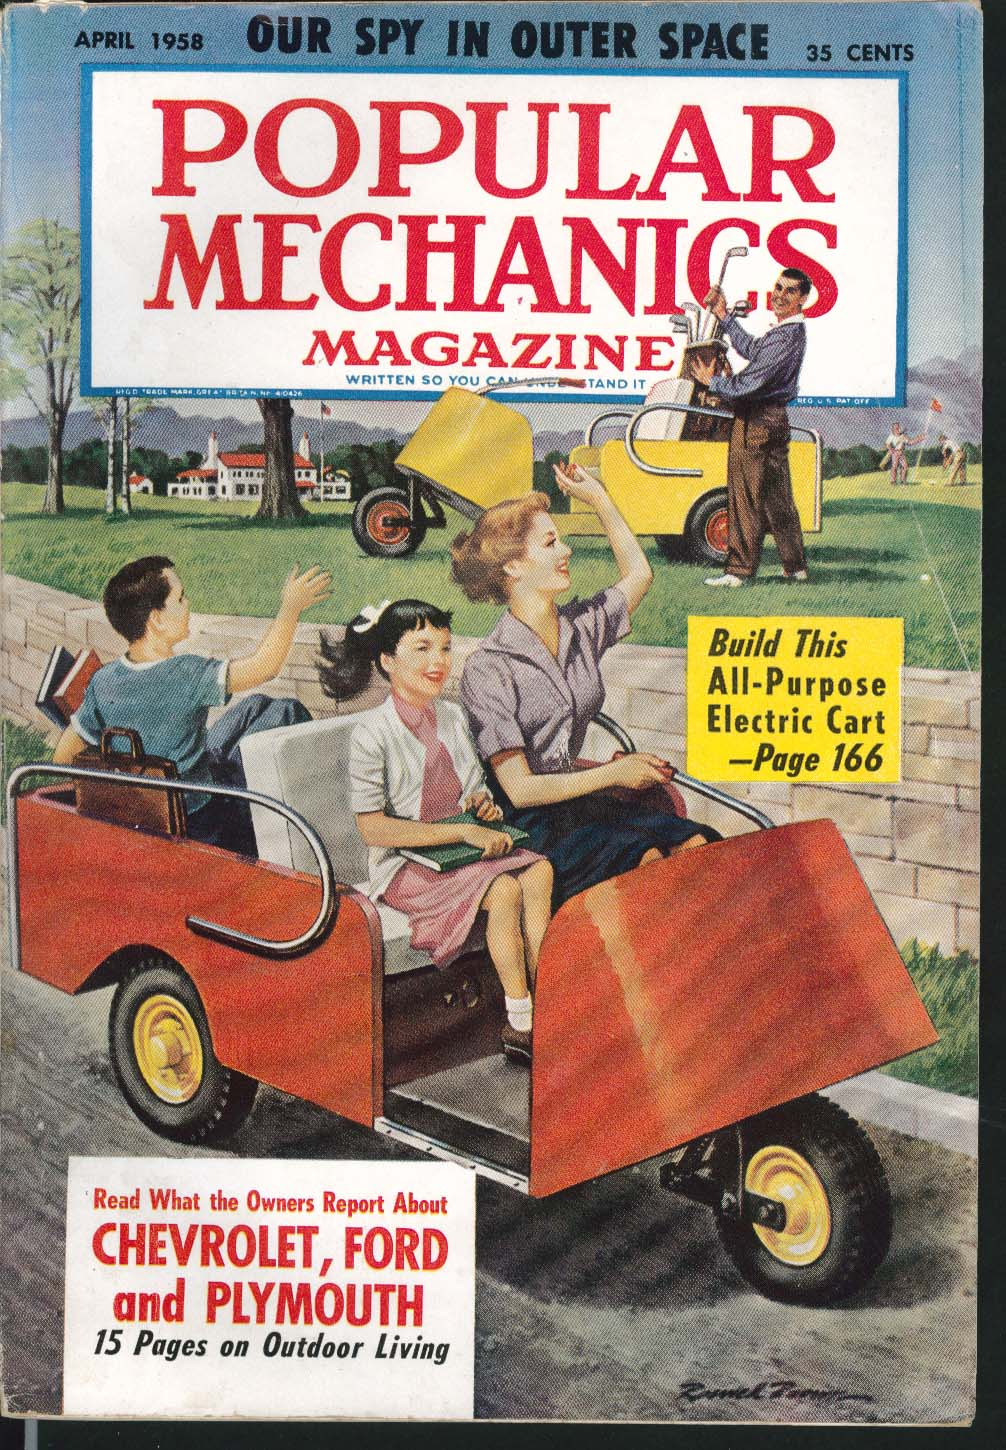 POPULAR MECHANICS Chevrolet Ford Plymouth owners report Outdoor Living 4 1958